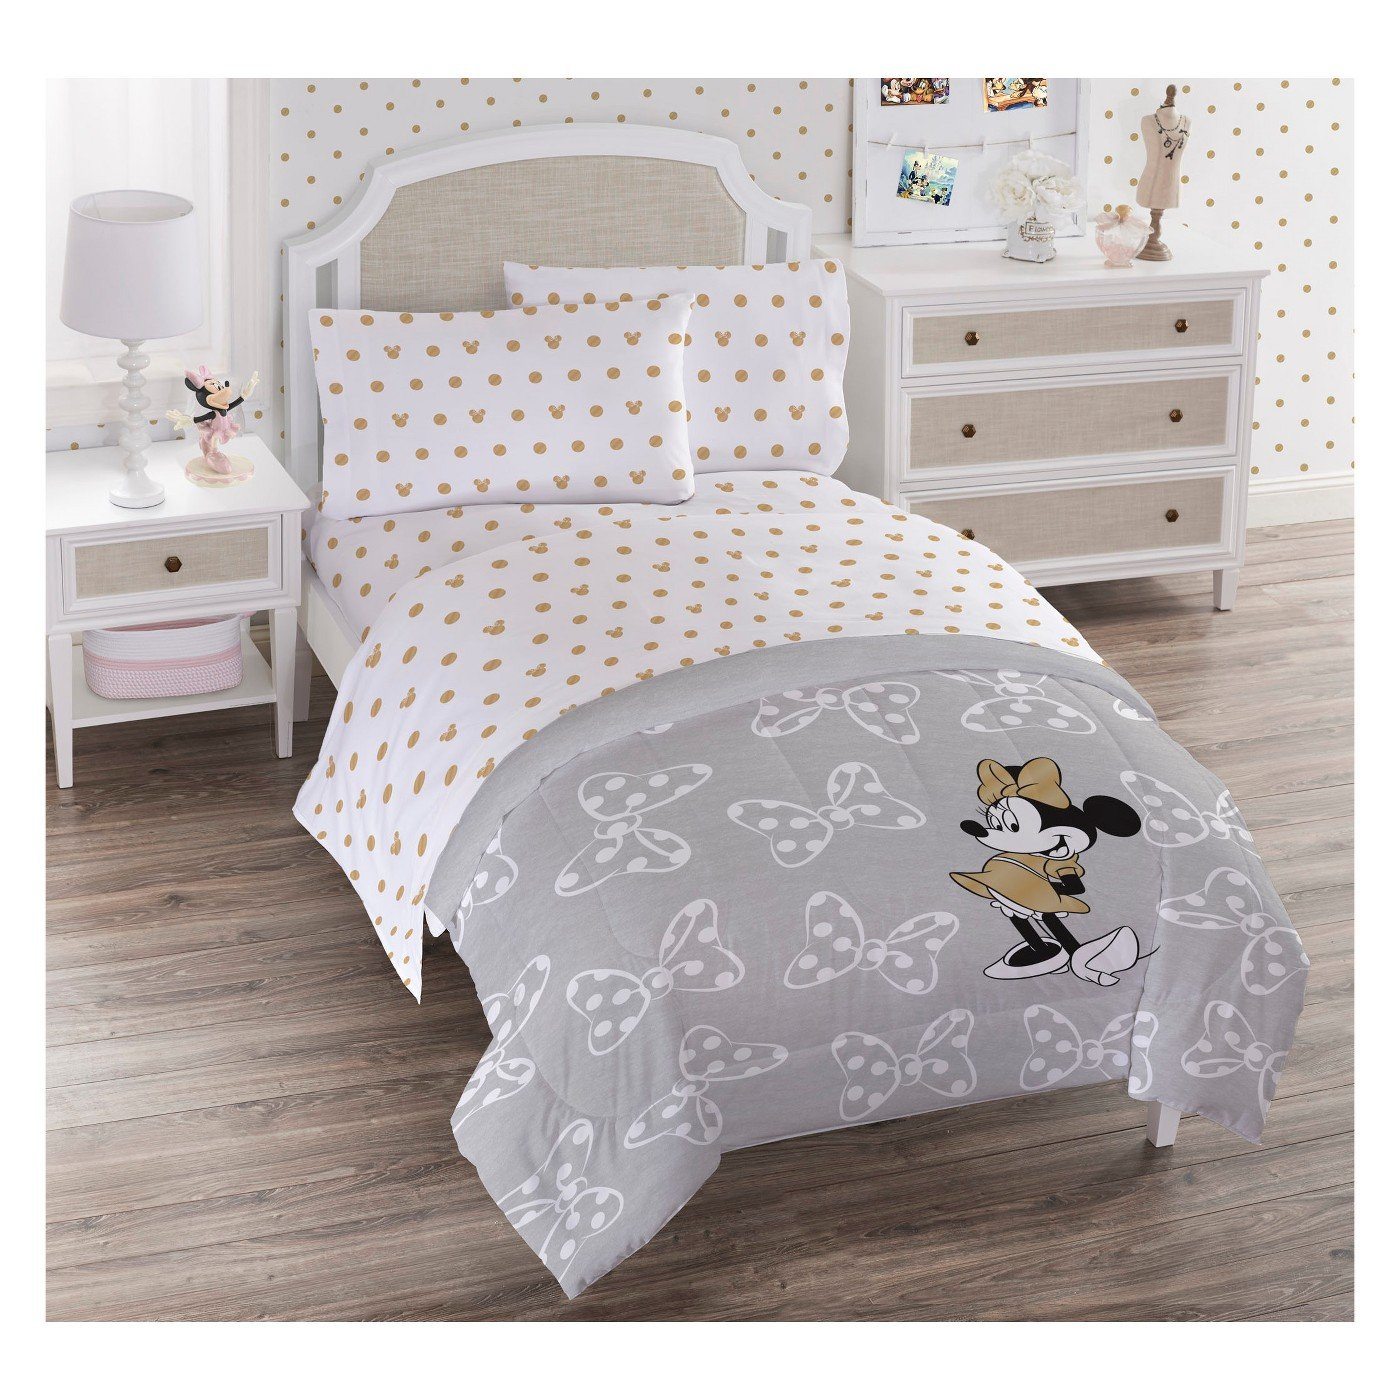 Franco Disney Minnie Mouse Full/Queen Quilt Set Gray/White by Franco